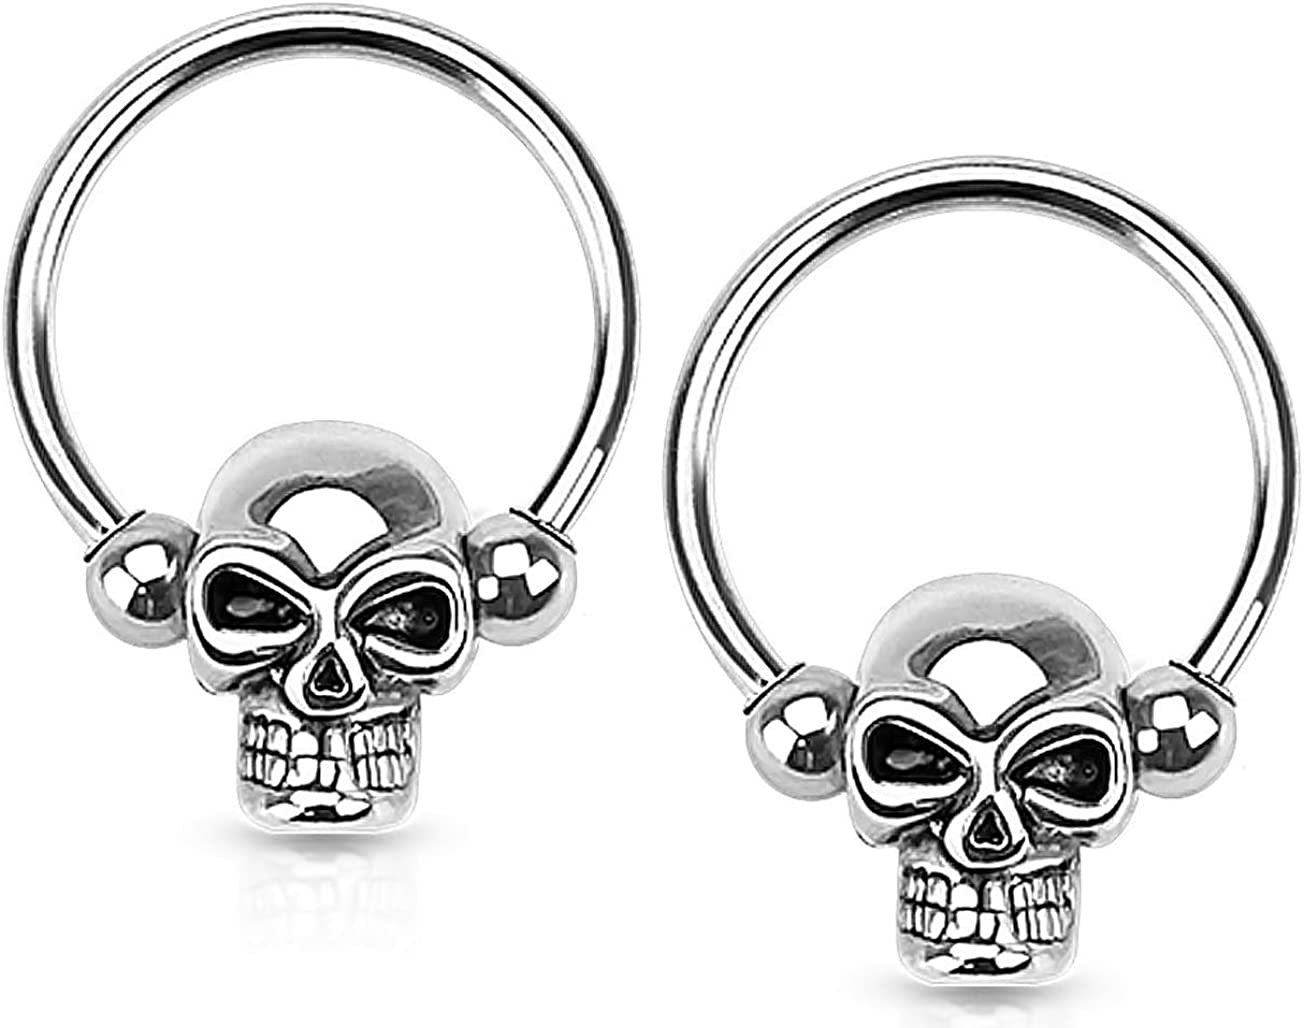 Forbidden Body Jewelry Set of 14G-16G Surgical Steel Skull CBR Hoops for Ear Lobes/Cartilage/Nipples